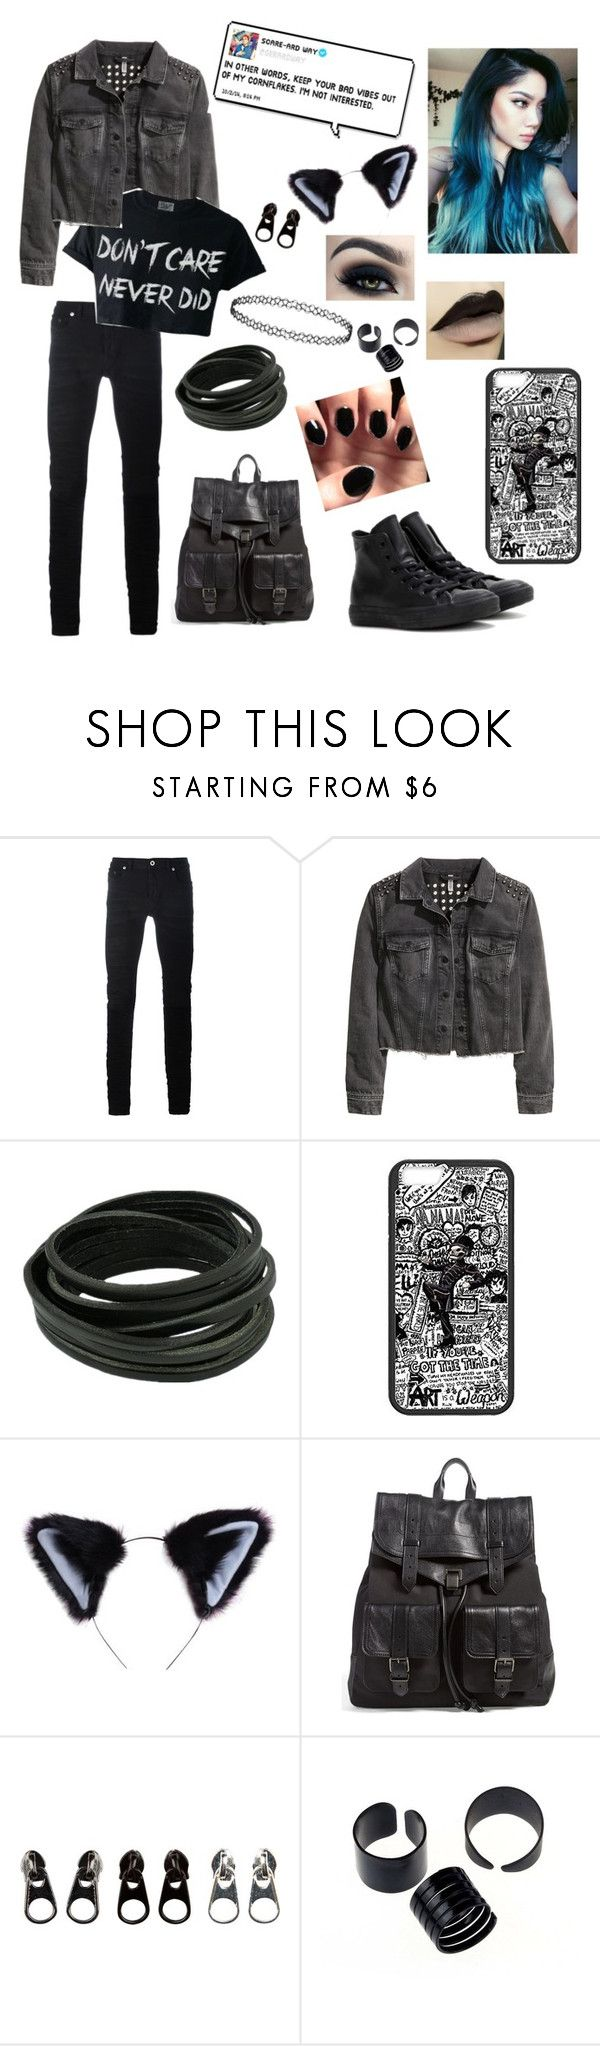 """Untitled #36"" by ryker1001 ❤ liked on Polyvore featuring Diesel Black Gold, H&M, Too Faced Cosmetics, Proenza Schouler, Full Tilt and Converse"